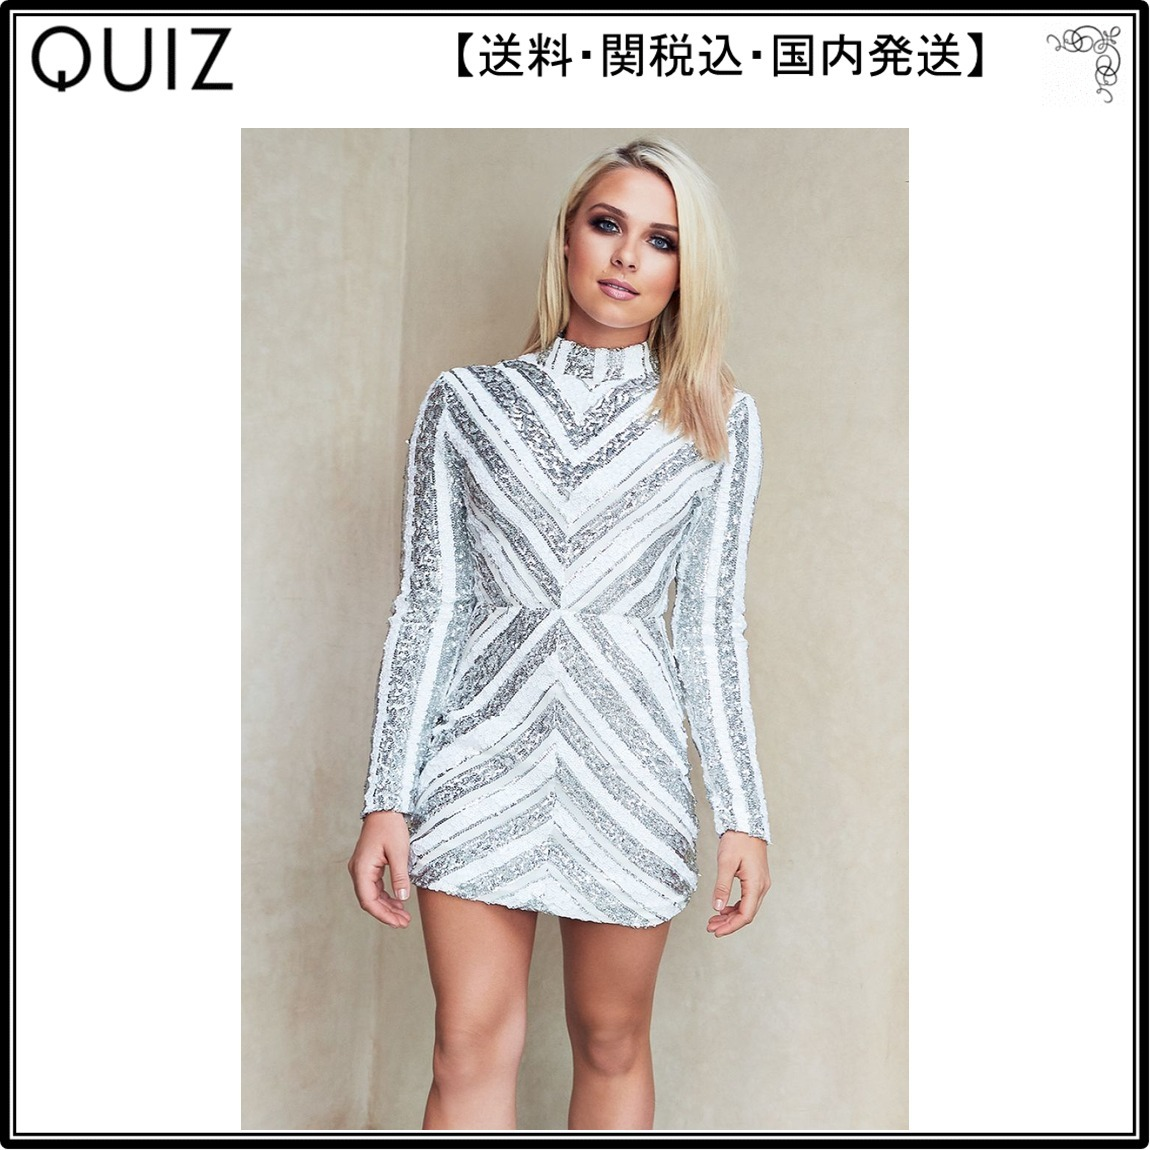 【海外限定】Quiz人気ドレス☆Gabby's White and Silver Long Sl